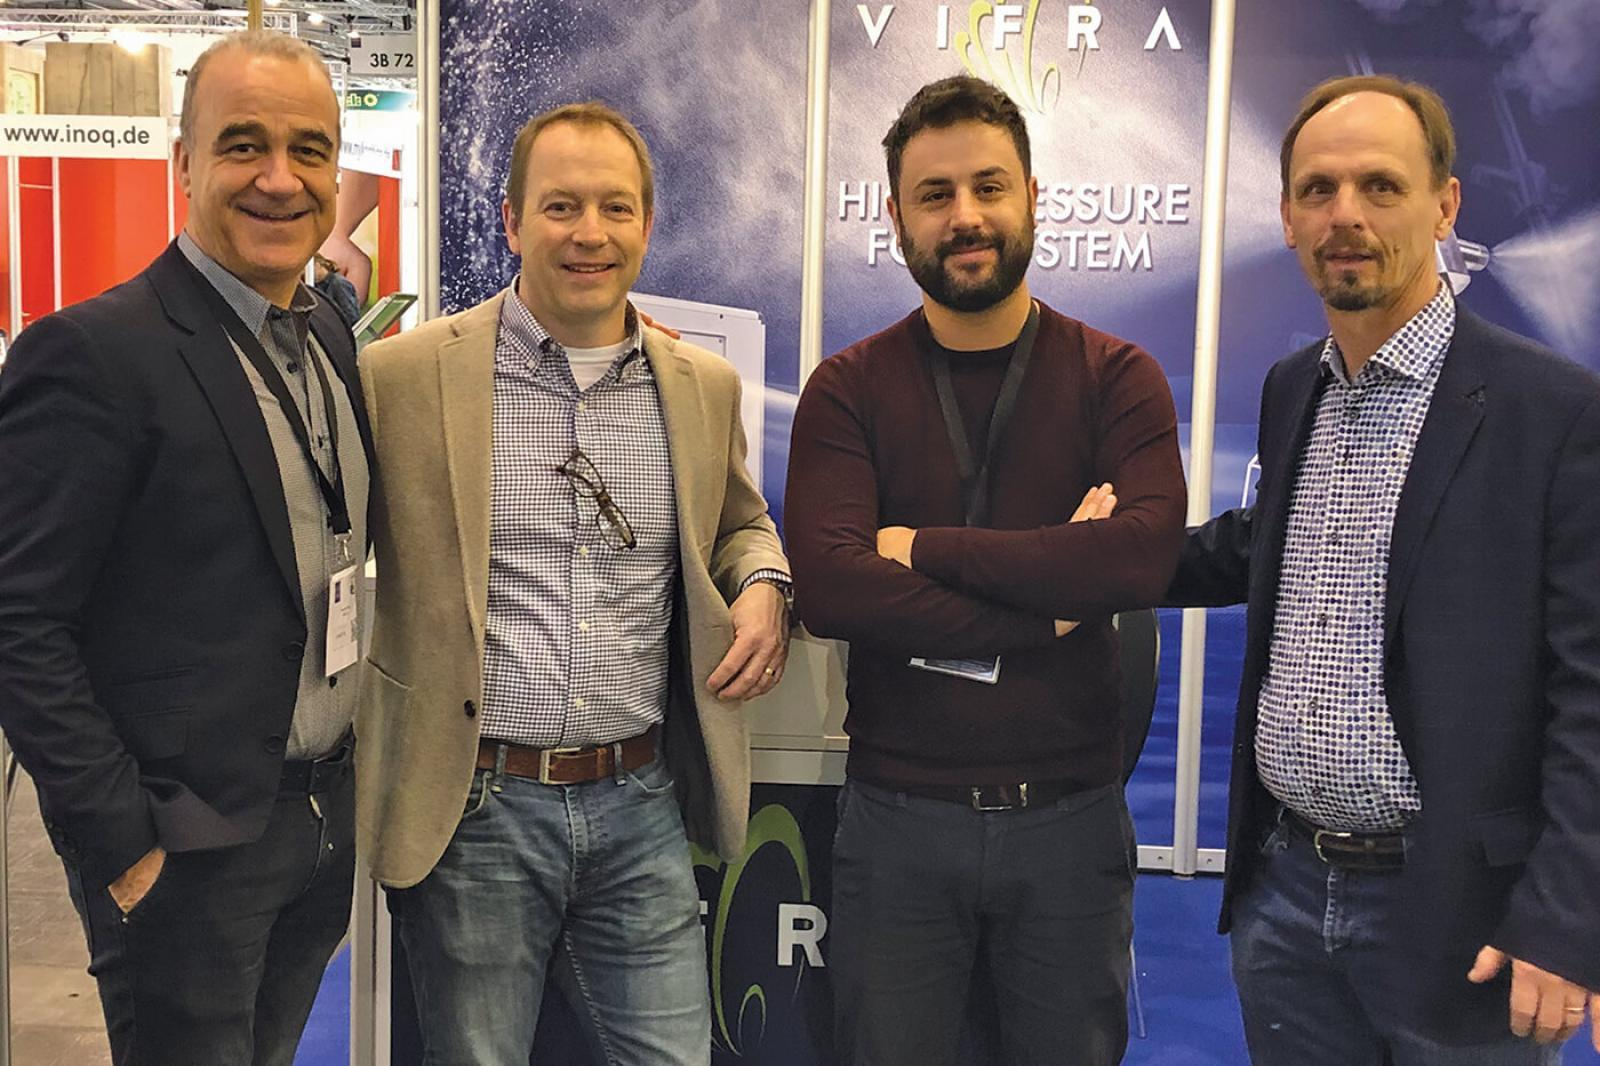 Dramm partners with Vifra